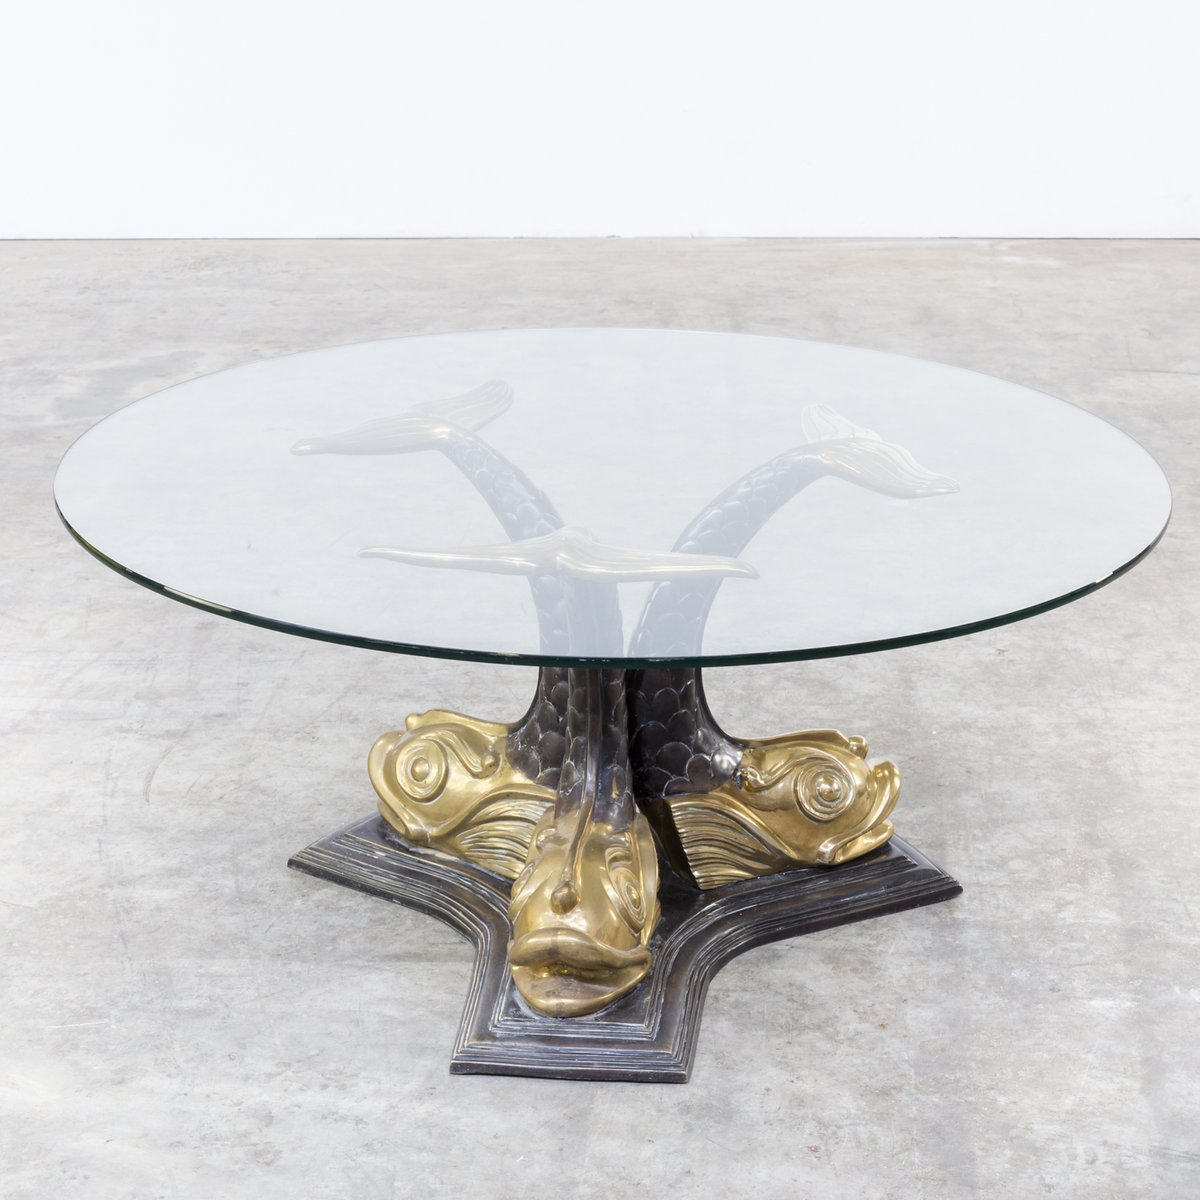 Italian Sculptural Brass Koi Fish Coffee Table 1960s For Sale At Pamono